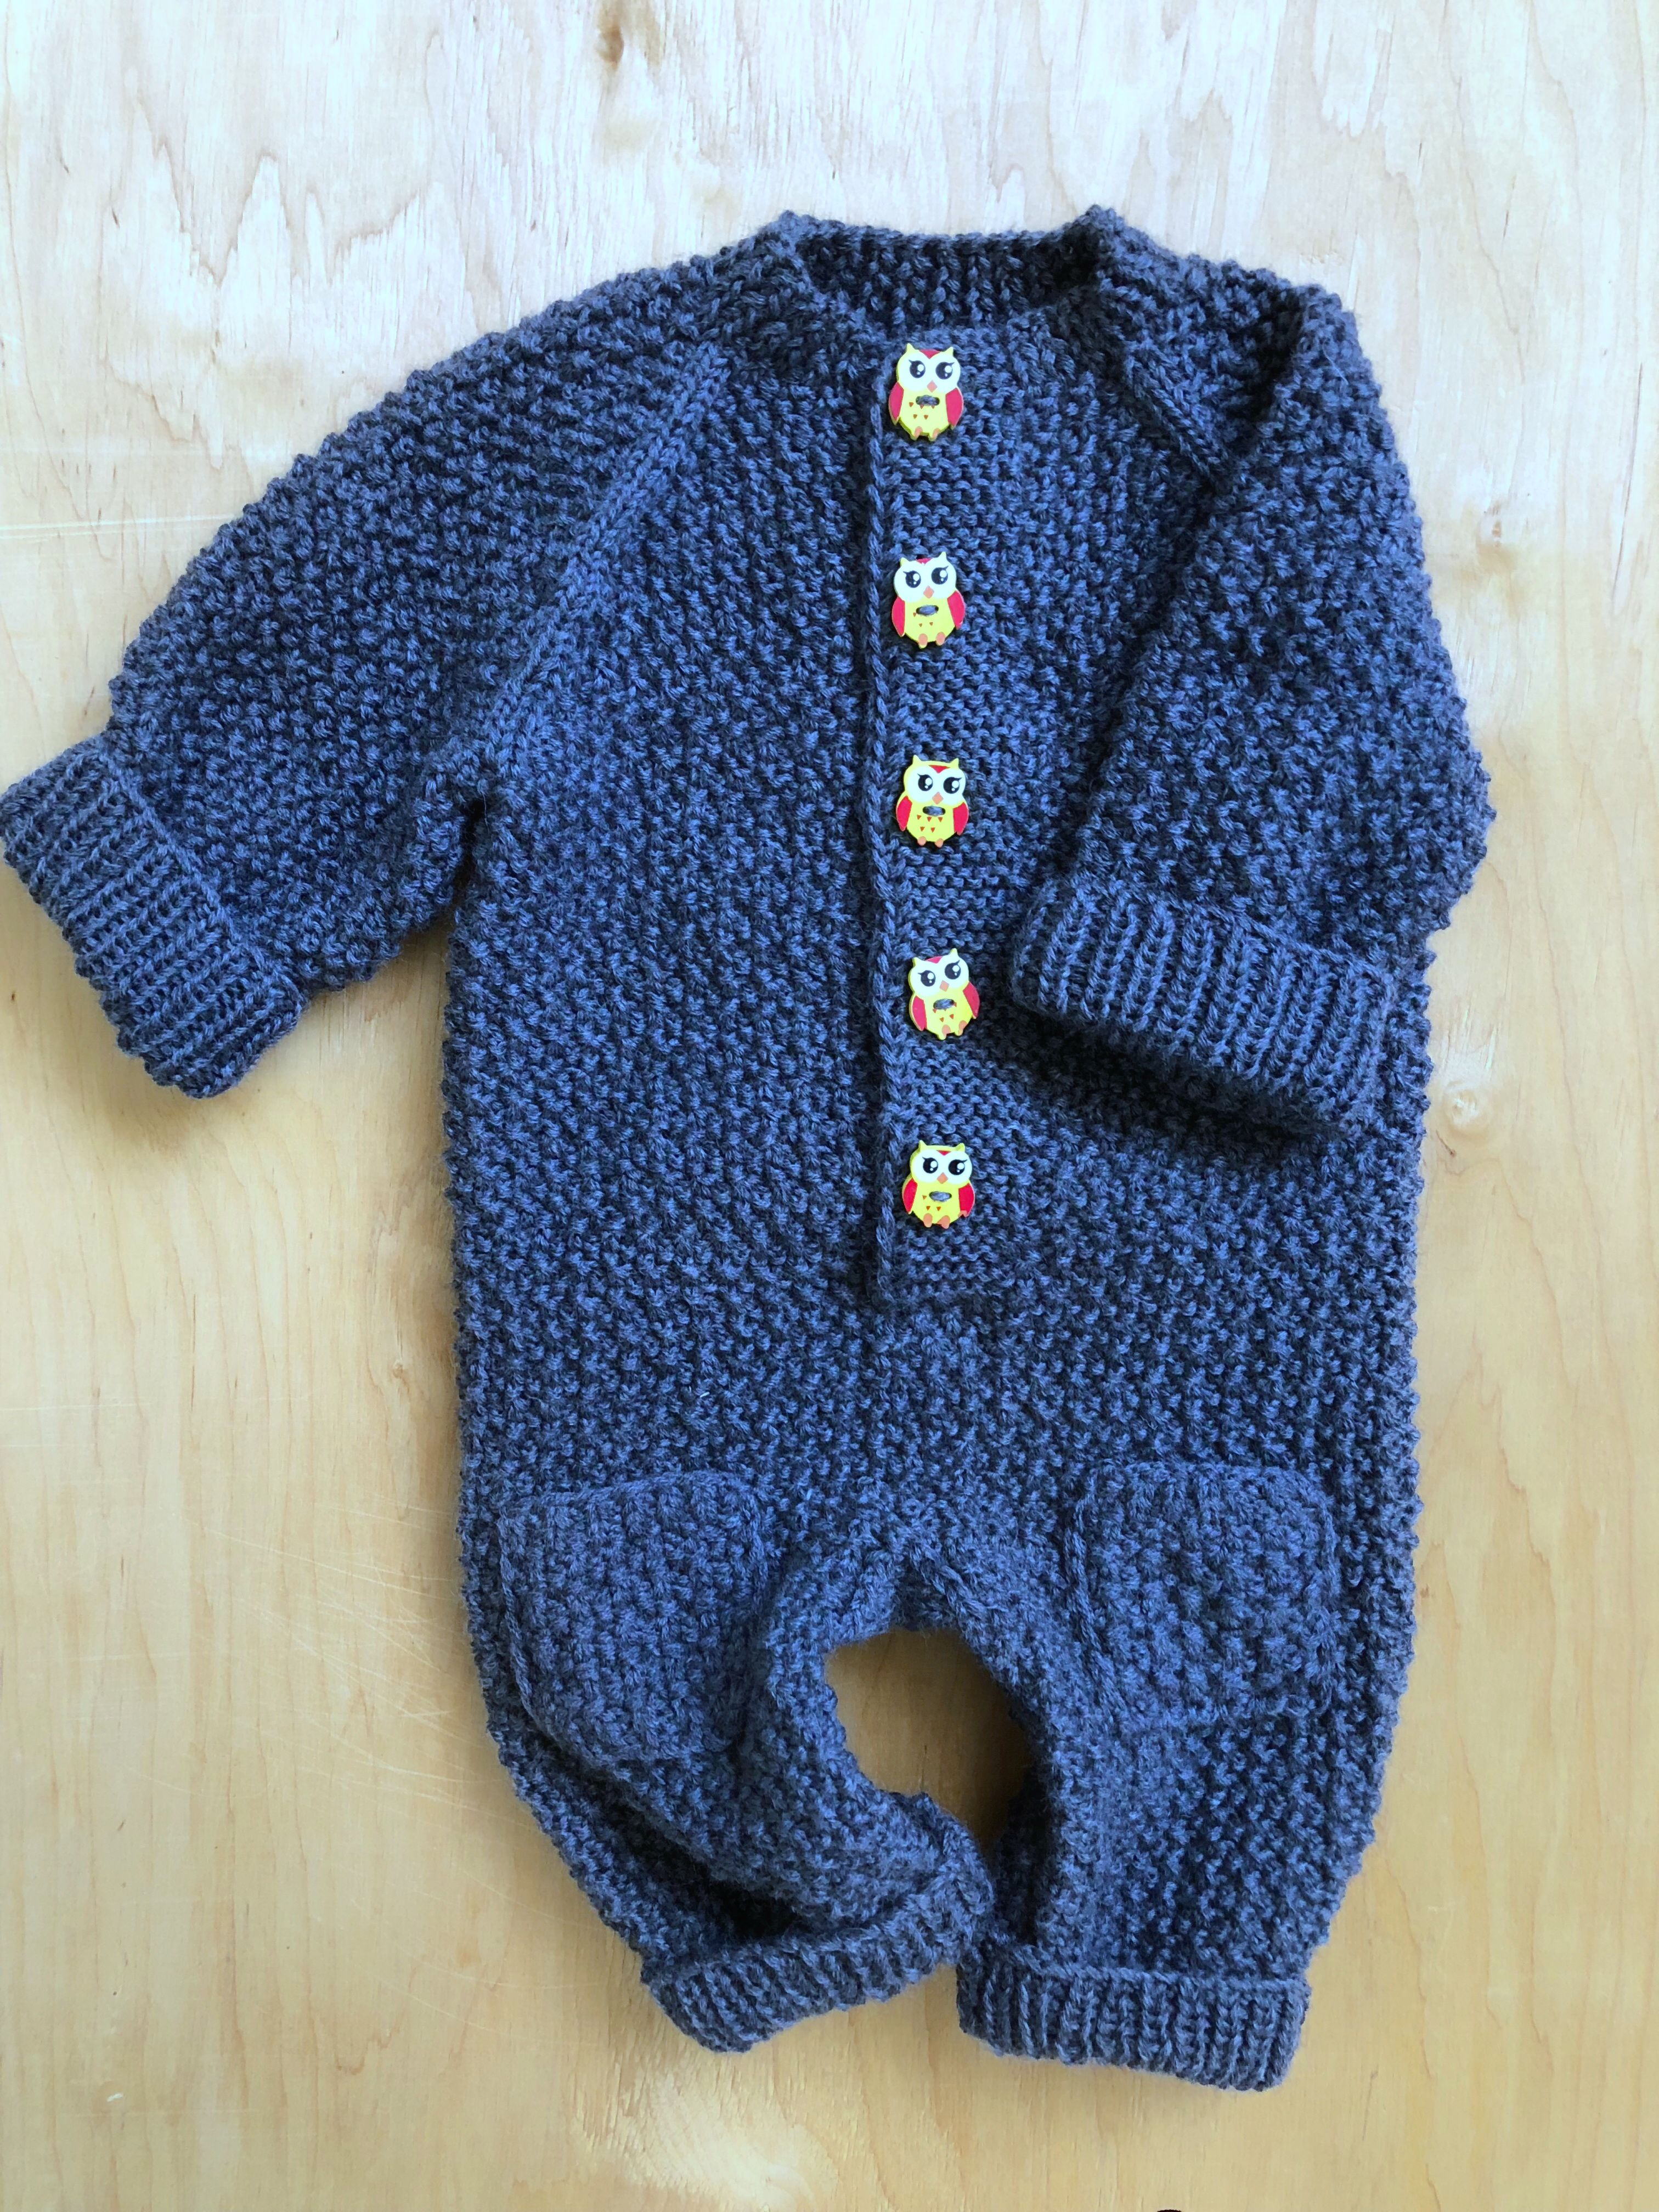 How to knit a jumpsuit for a newborn